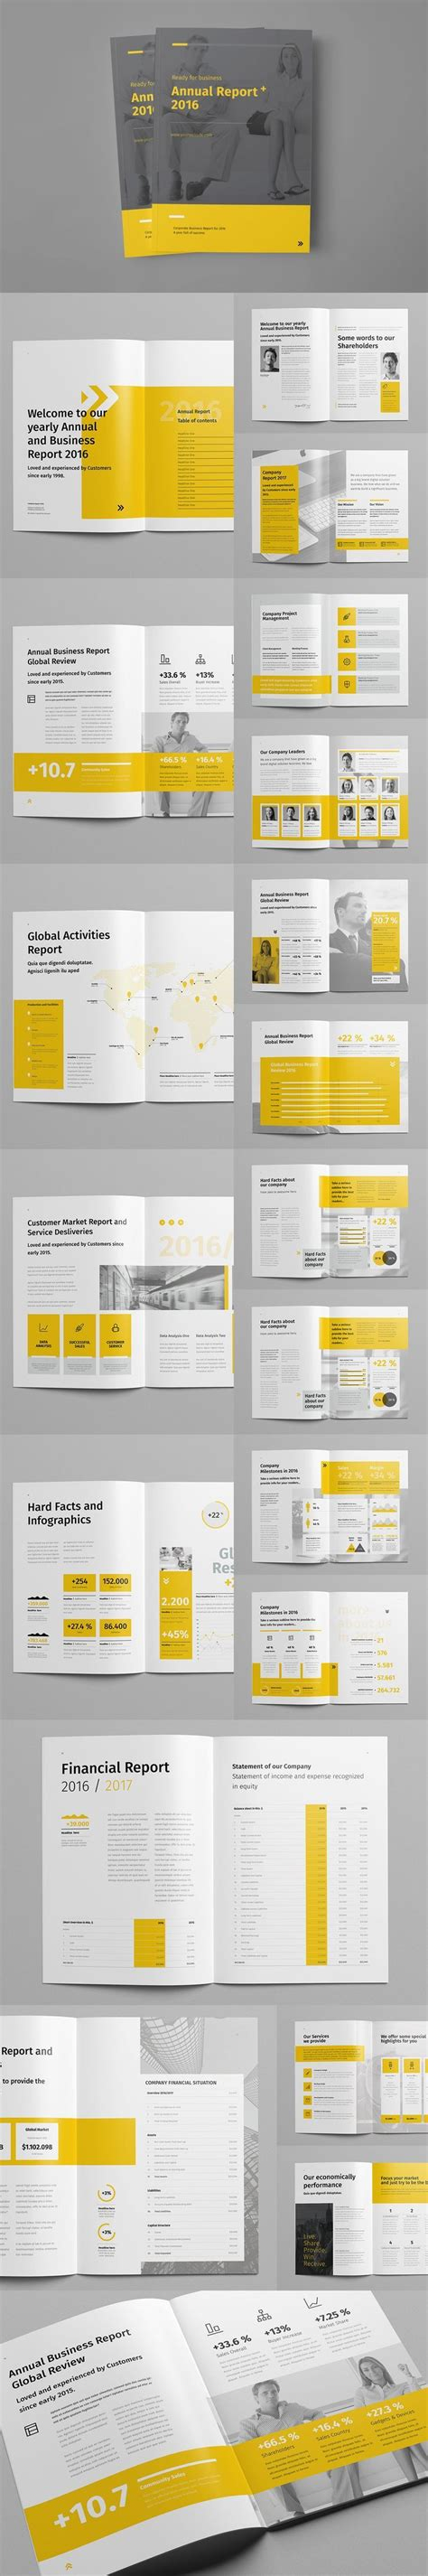 annual report covers ideas  pinterest annual